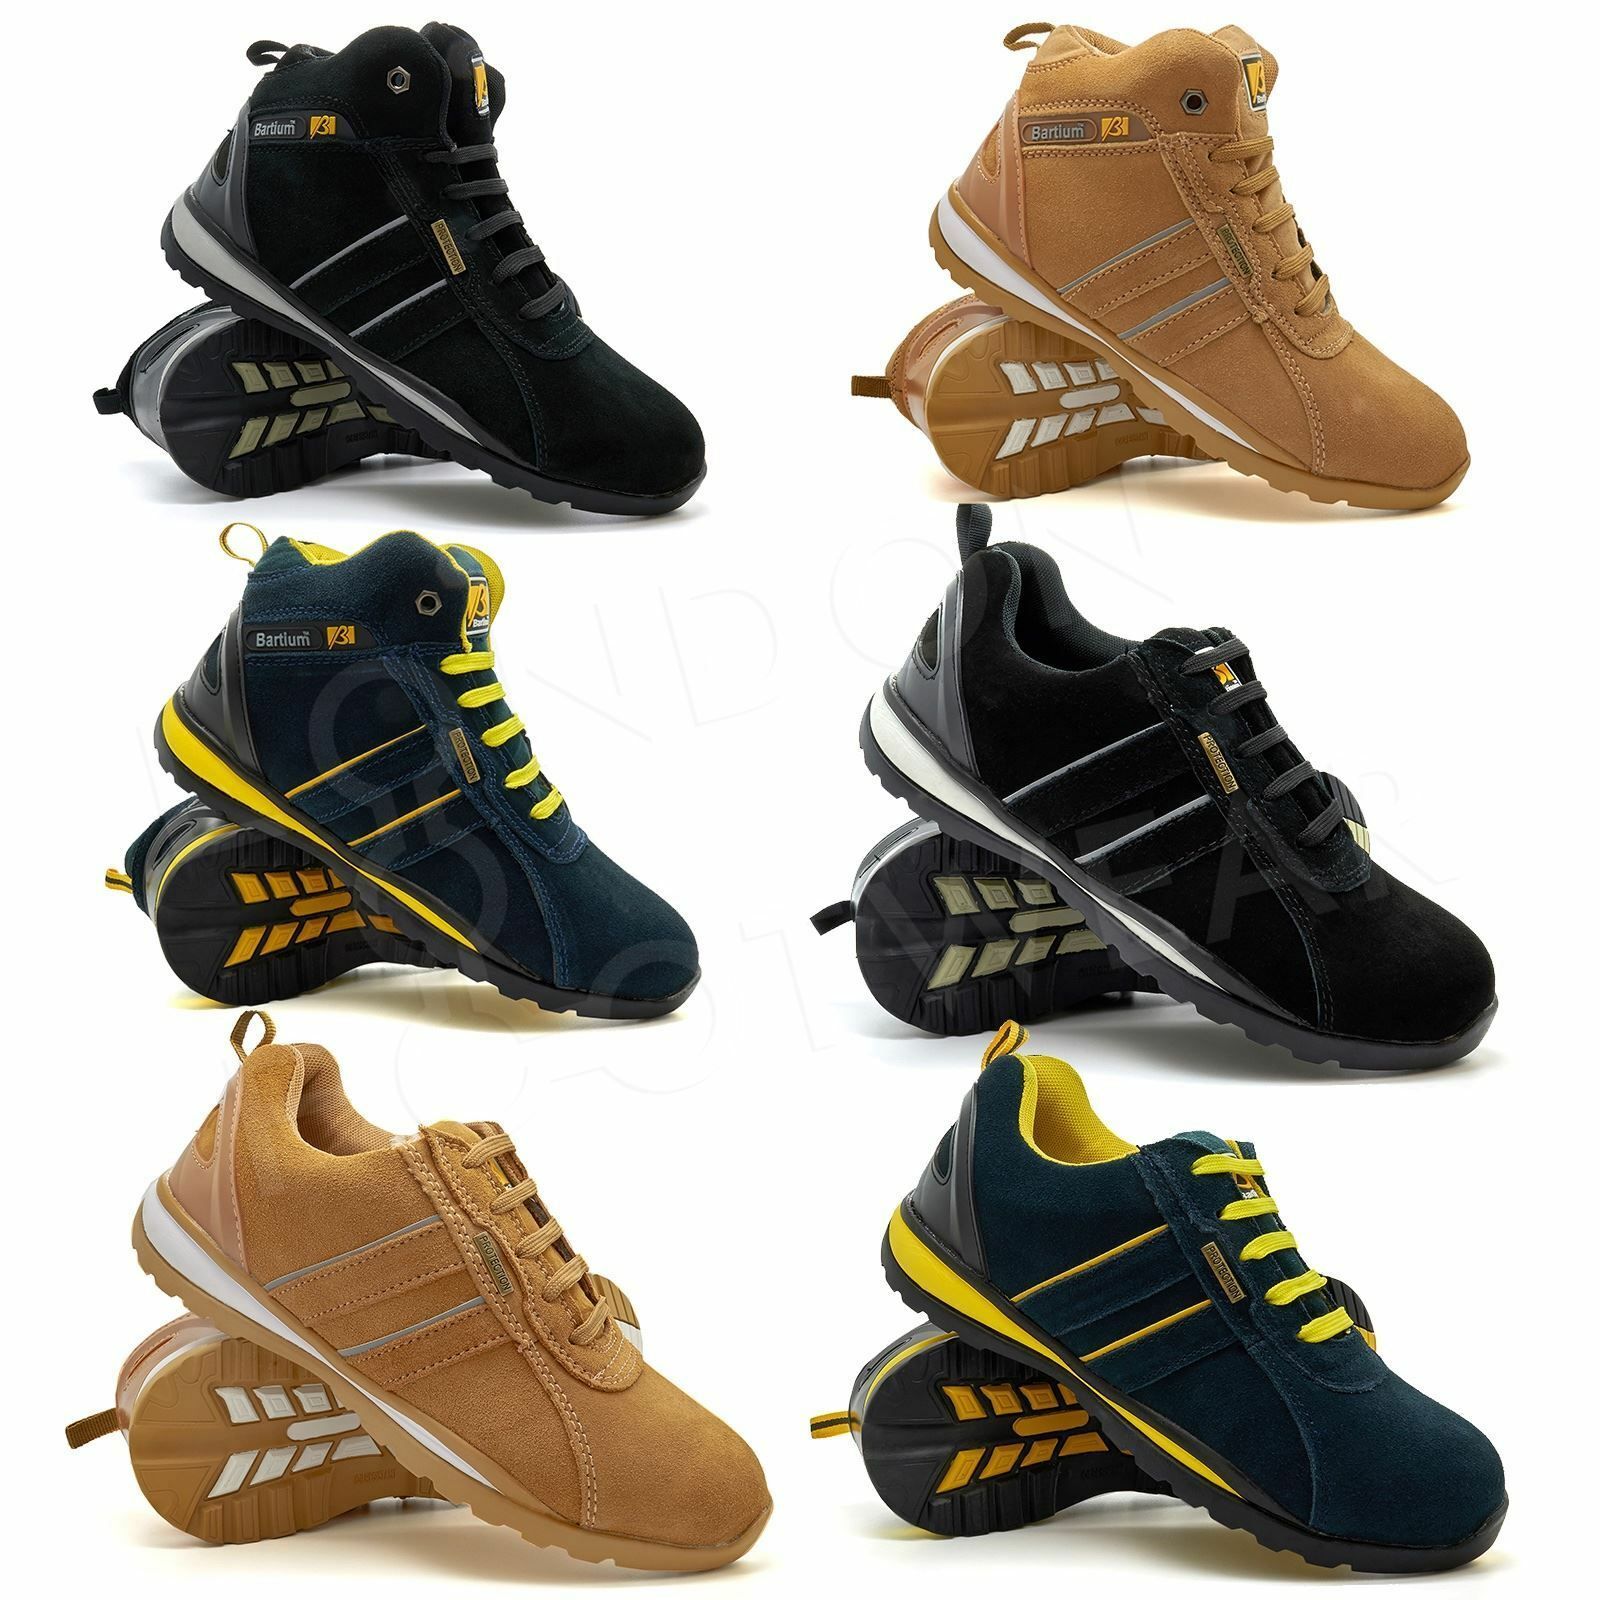 New Mens Safety Ankle Boots Trainers Steel Toe Cap Hiker UK Work Shoes Size 6-12 UK Hiker bd2c68